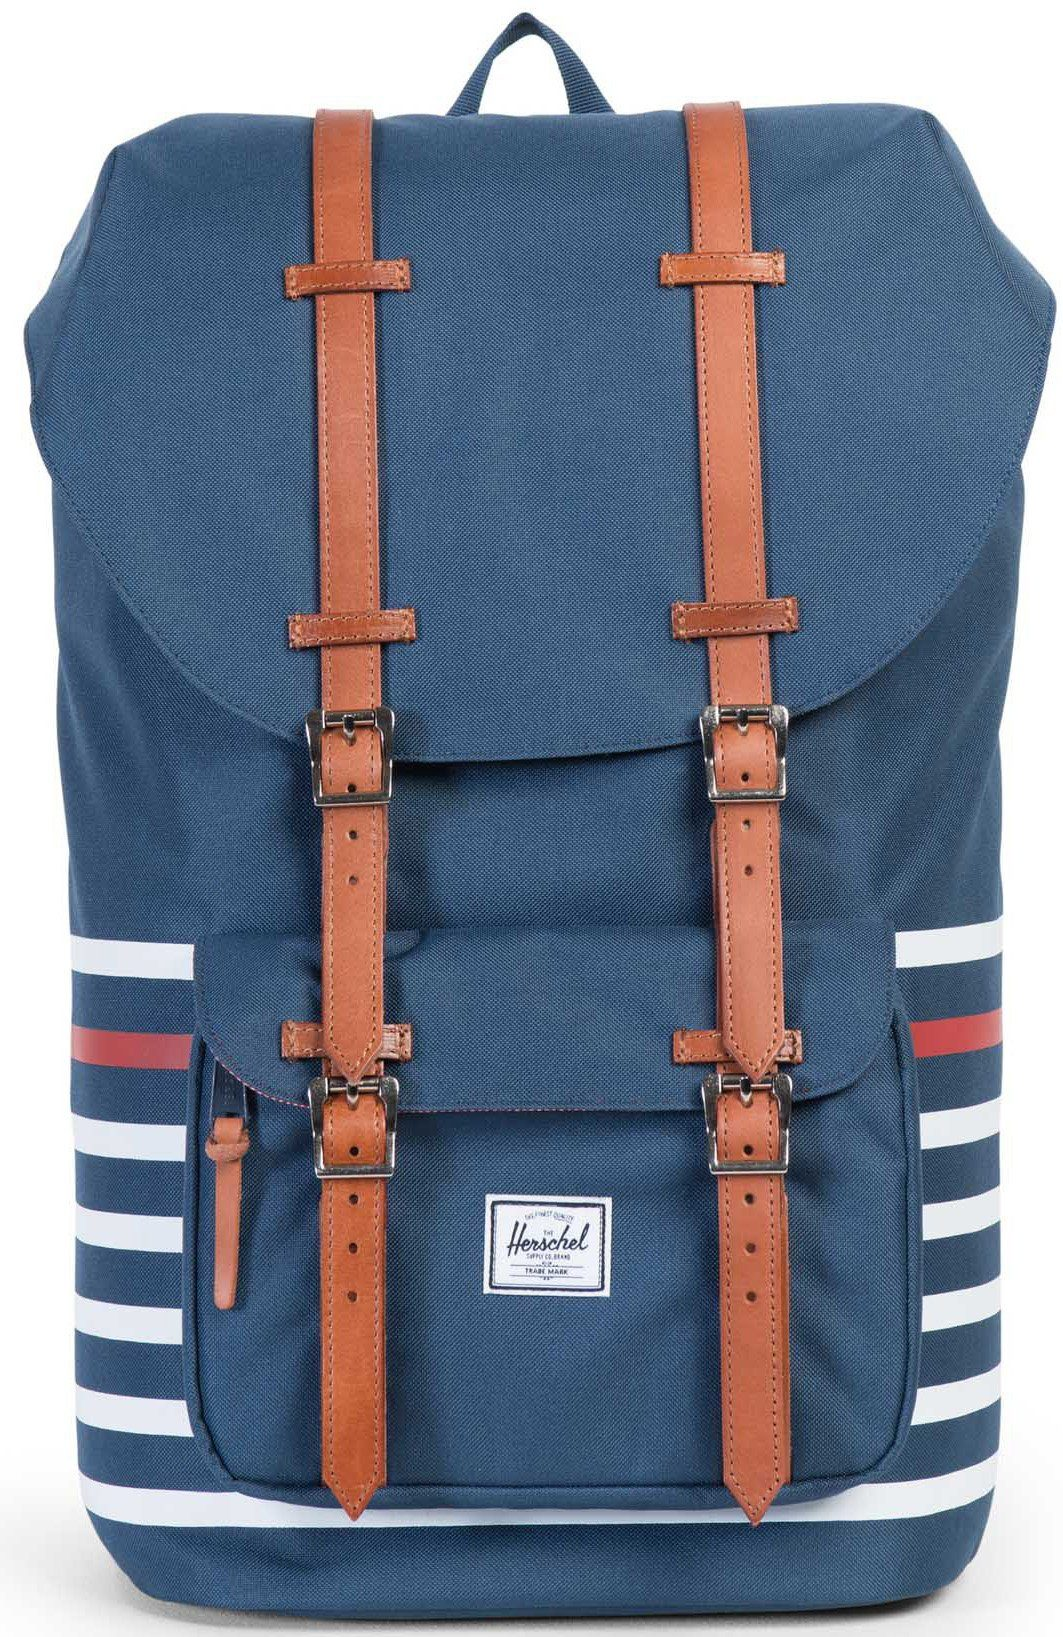 Herschel Rucksack mit Laptopfach und Lederriemen, »Little America Backpack, Navy Offset Stripe«